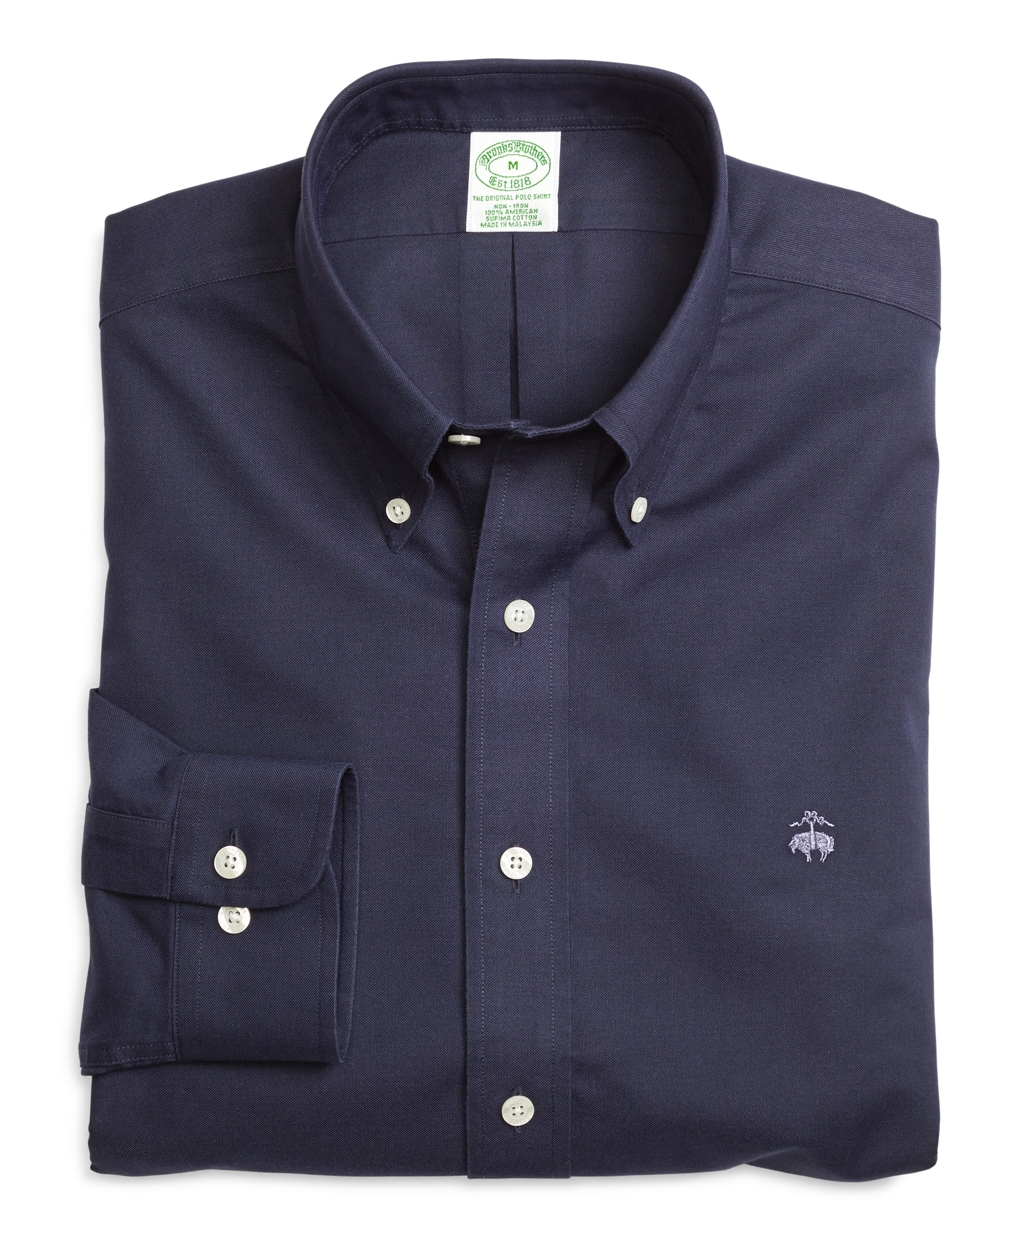 Brooks brothers non iron extra slim fit solid sport shirt Brooks brothers shirt size guide